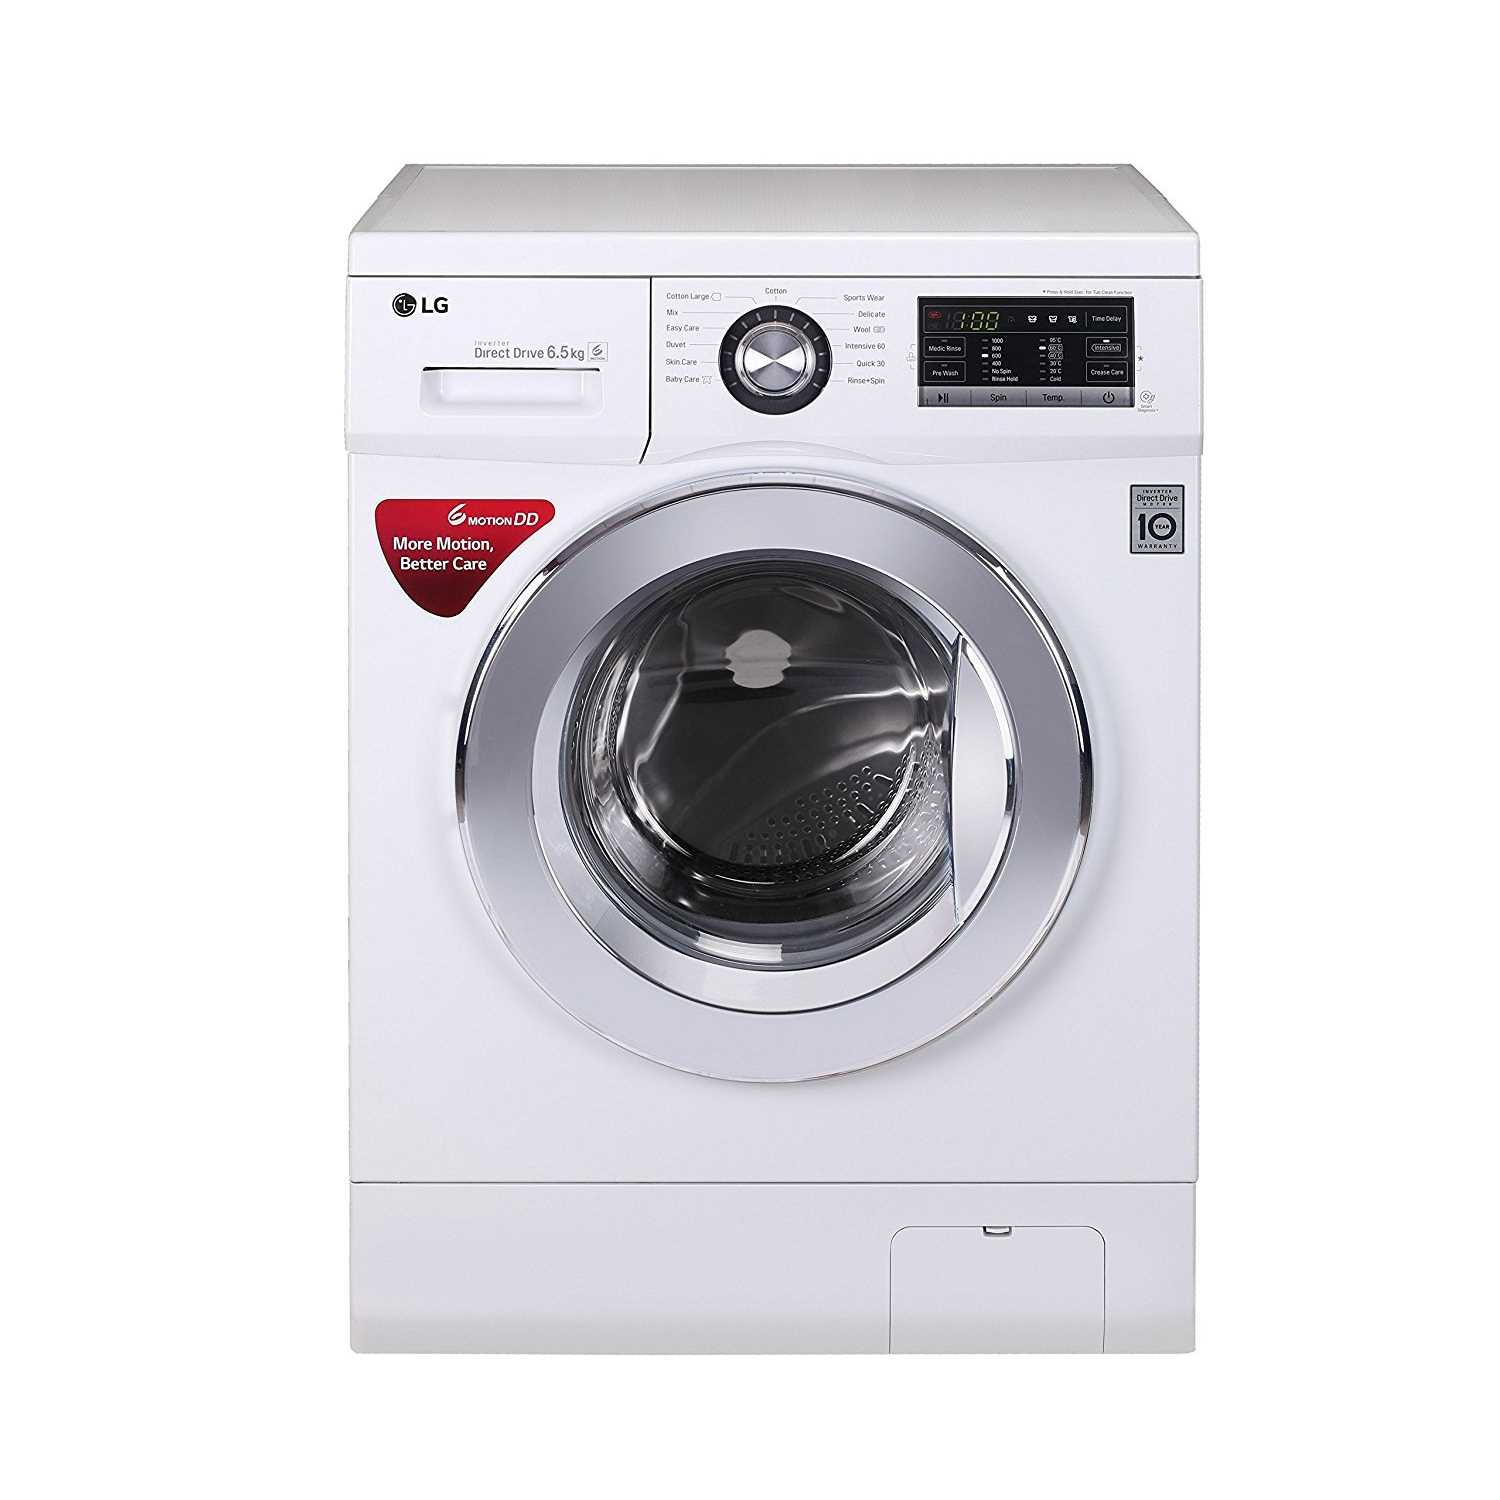 LG FH0G6WDNL22 6.5 Kg Fully Automatic Front Loading Washing Machine